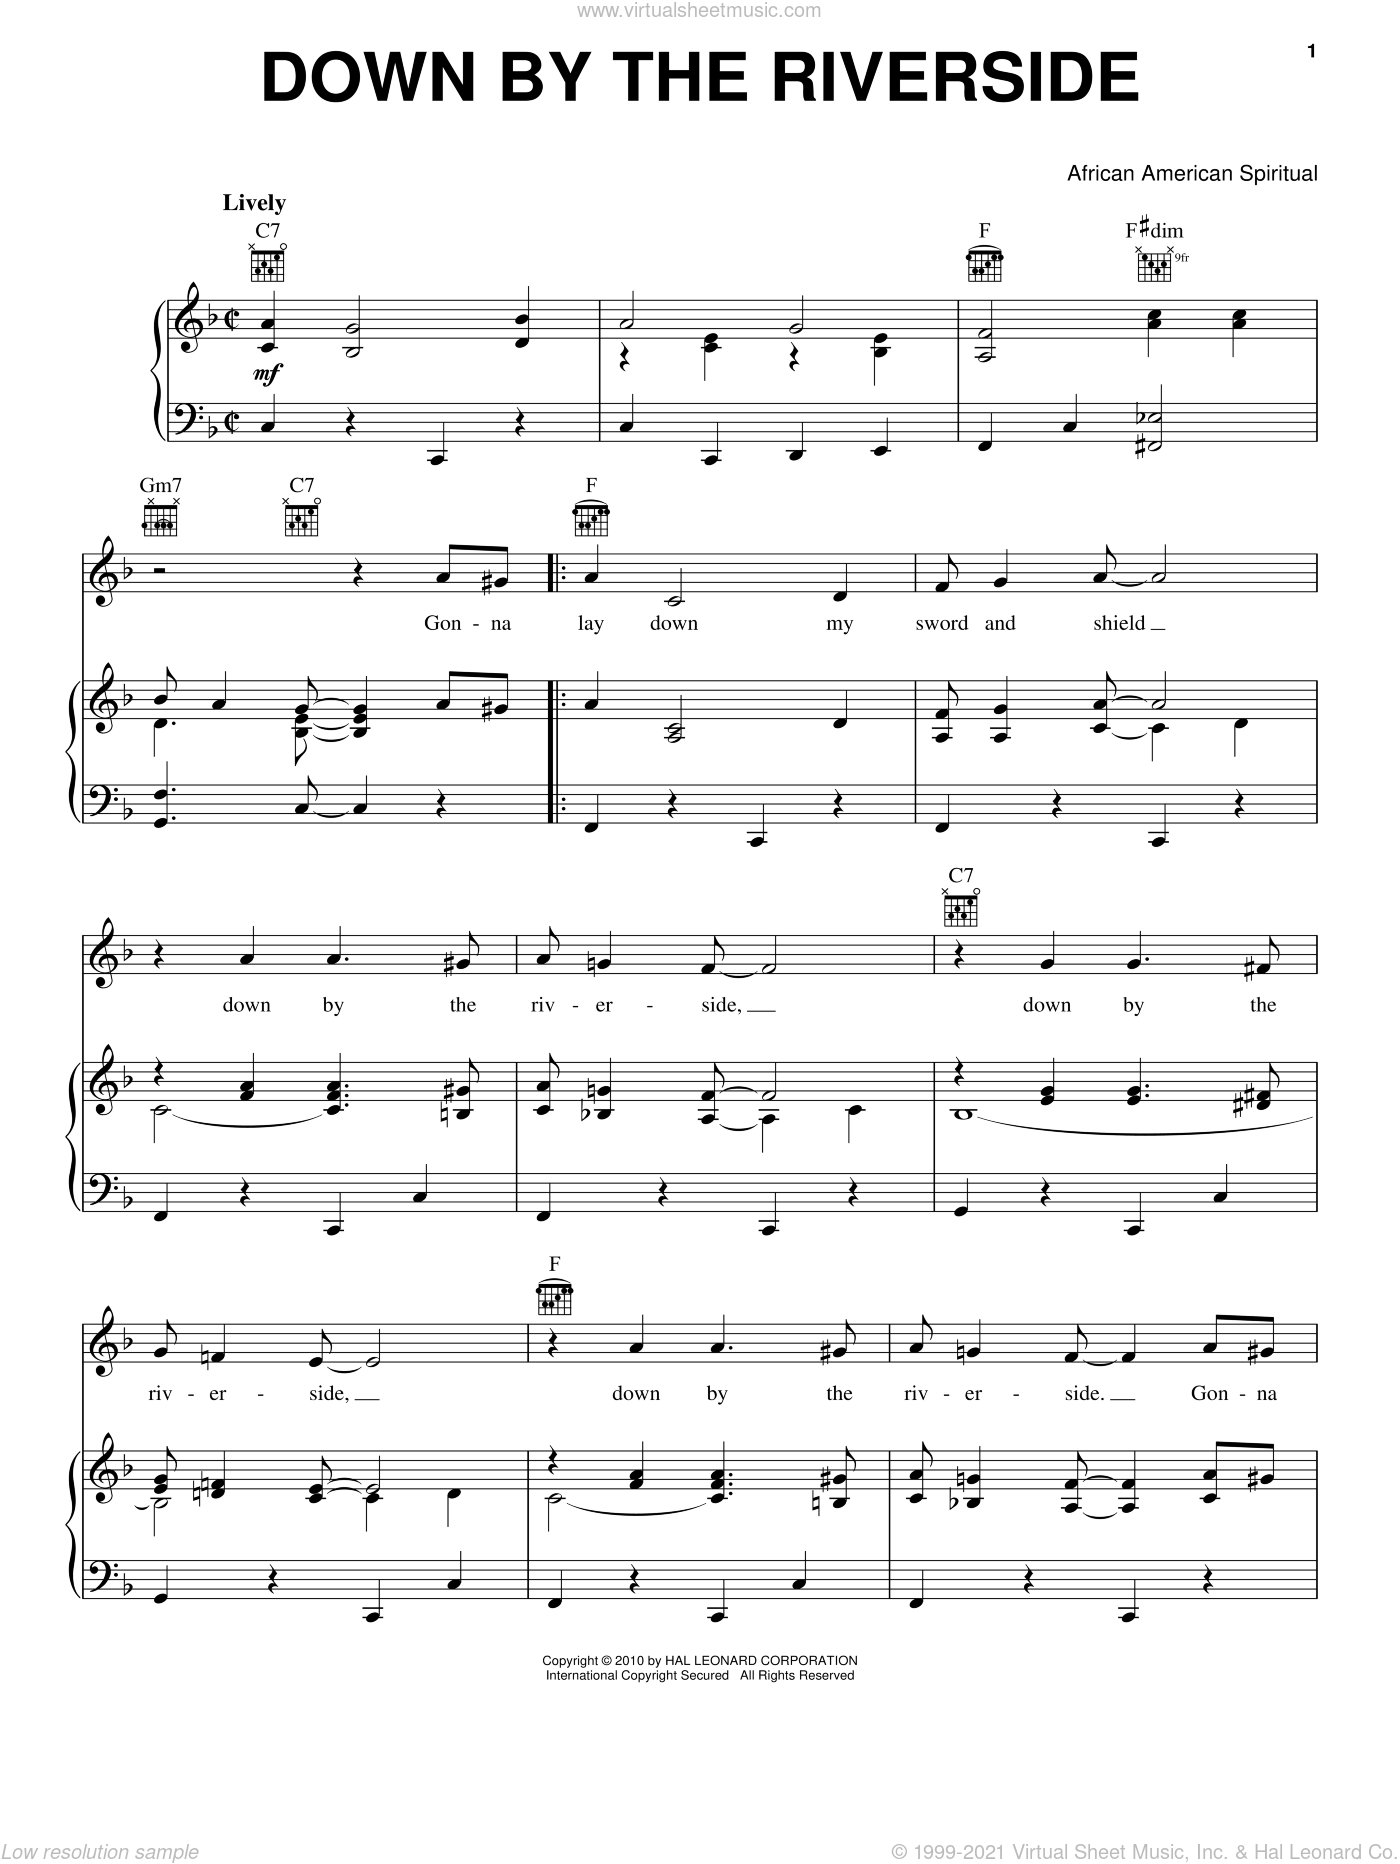 Down By The Riverside sheet music for voice, piano or guitar. Score Image Preview.